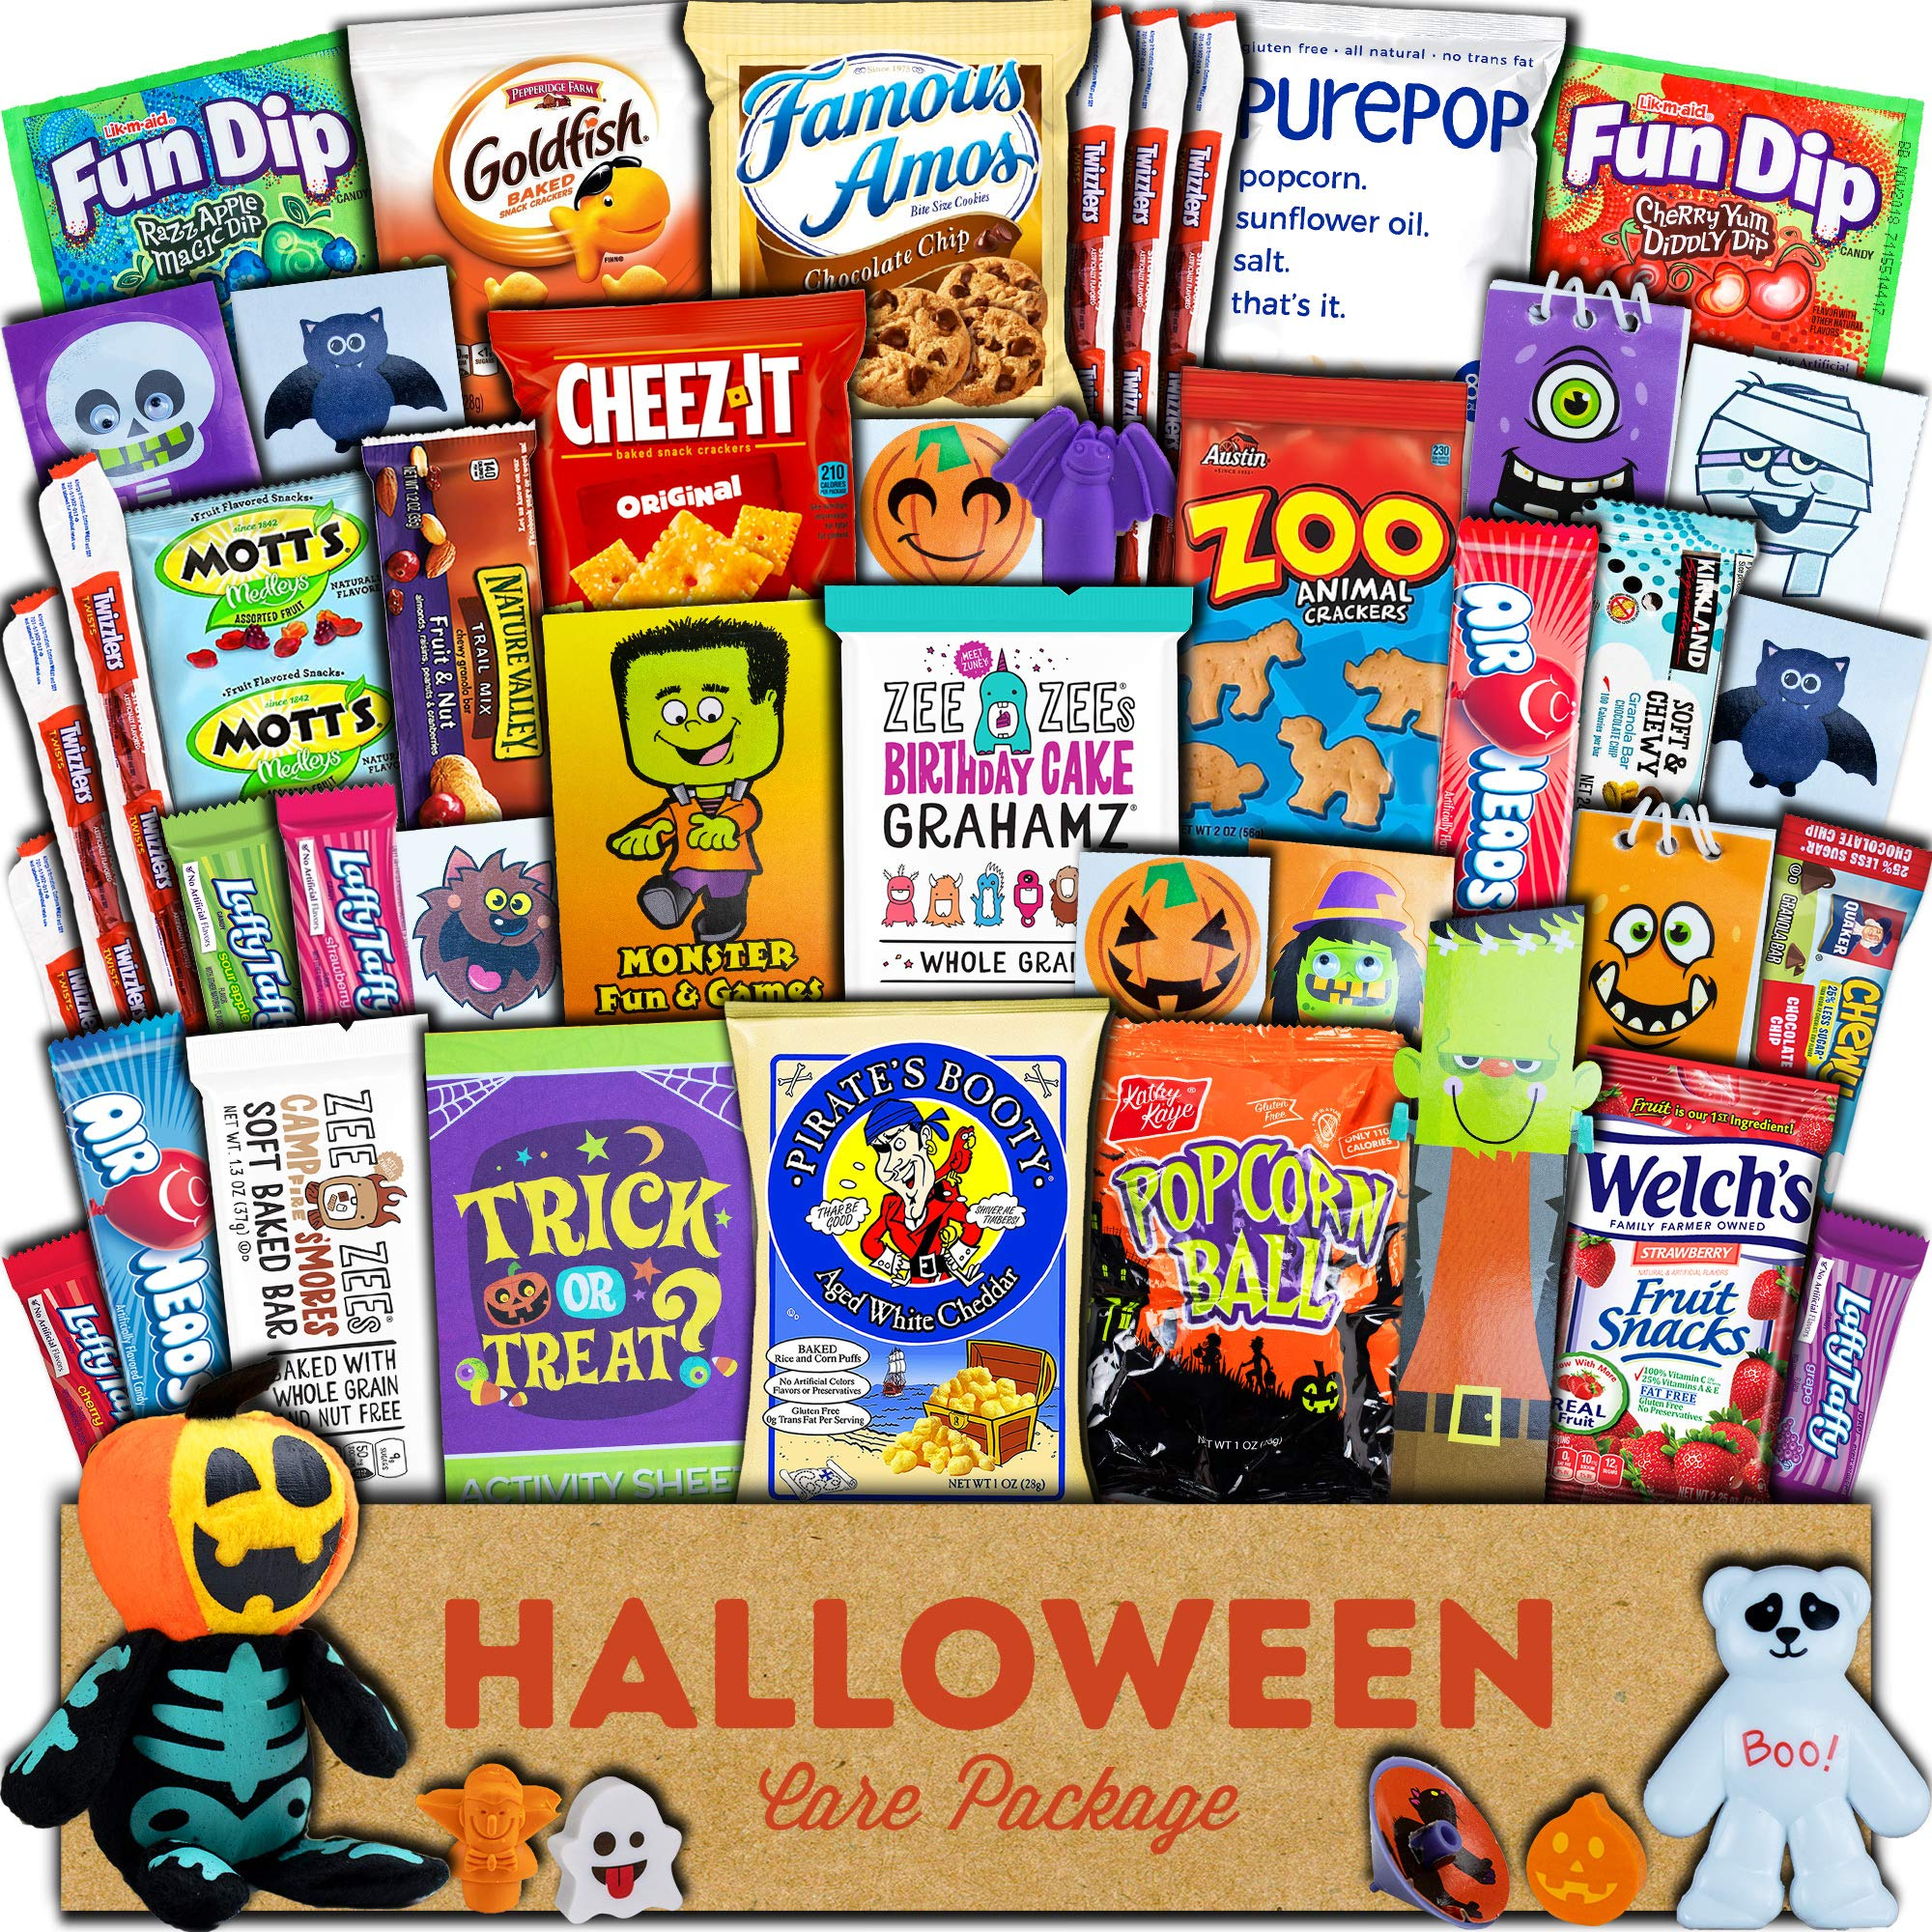 Halloween Care Package (45ct) Trick or Treat Snacks Cookies Bars Chips Candy Toys Variety Gift Box Pack Assortment Basket Bundle Mixed Bulk Sampler Treats College Students Office by Heart & Holly